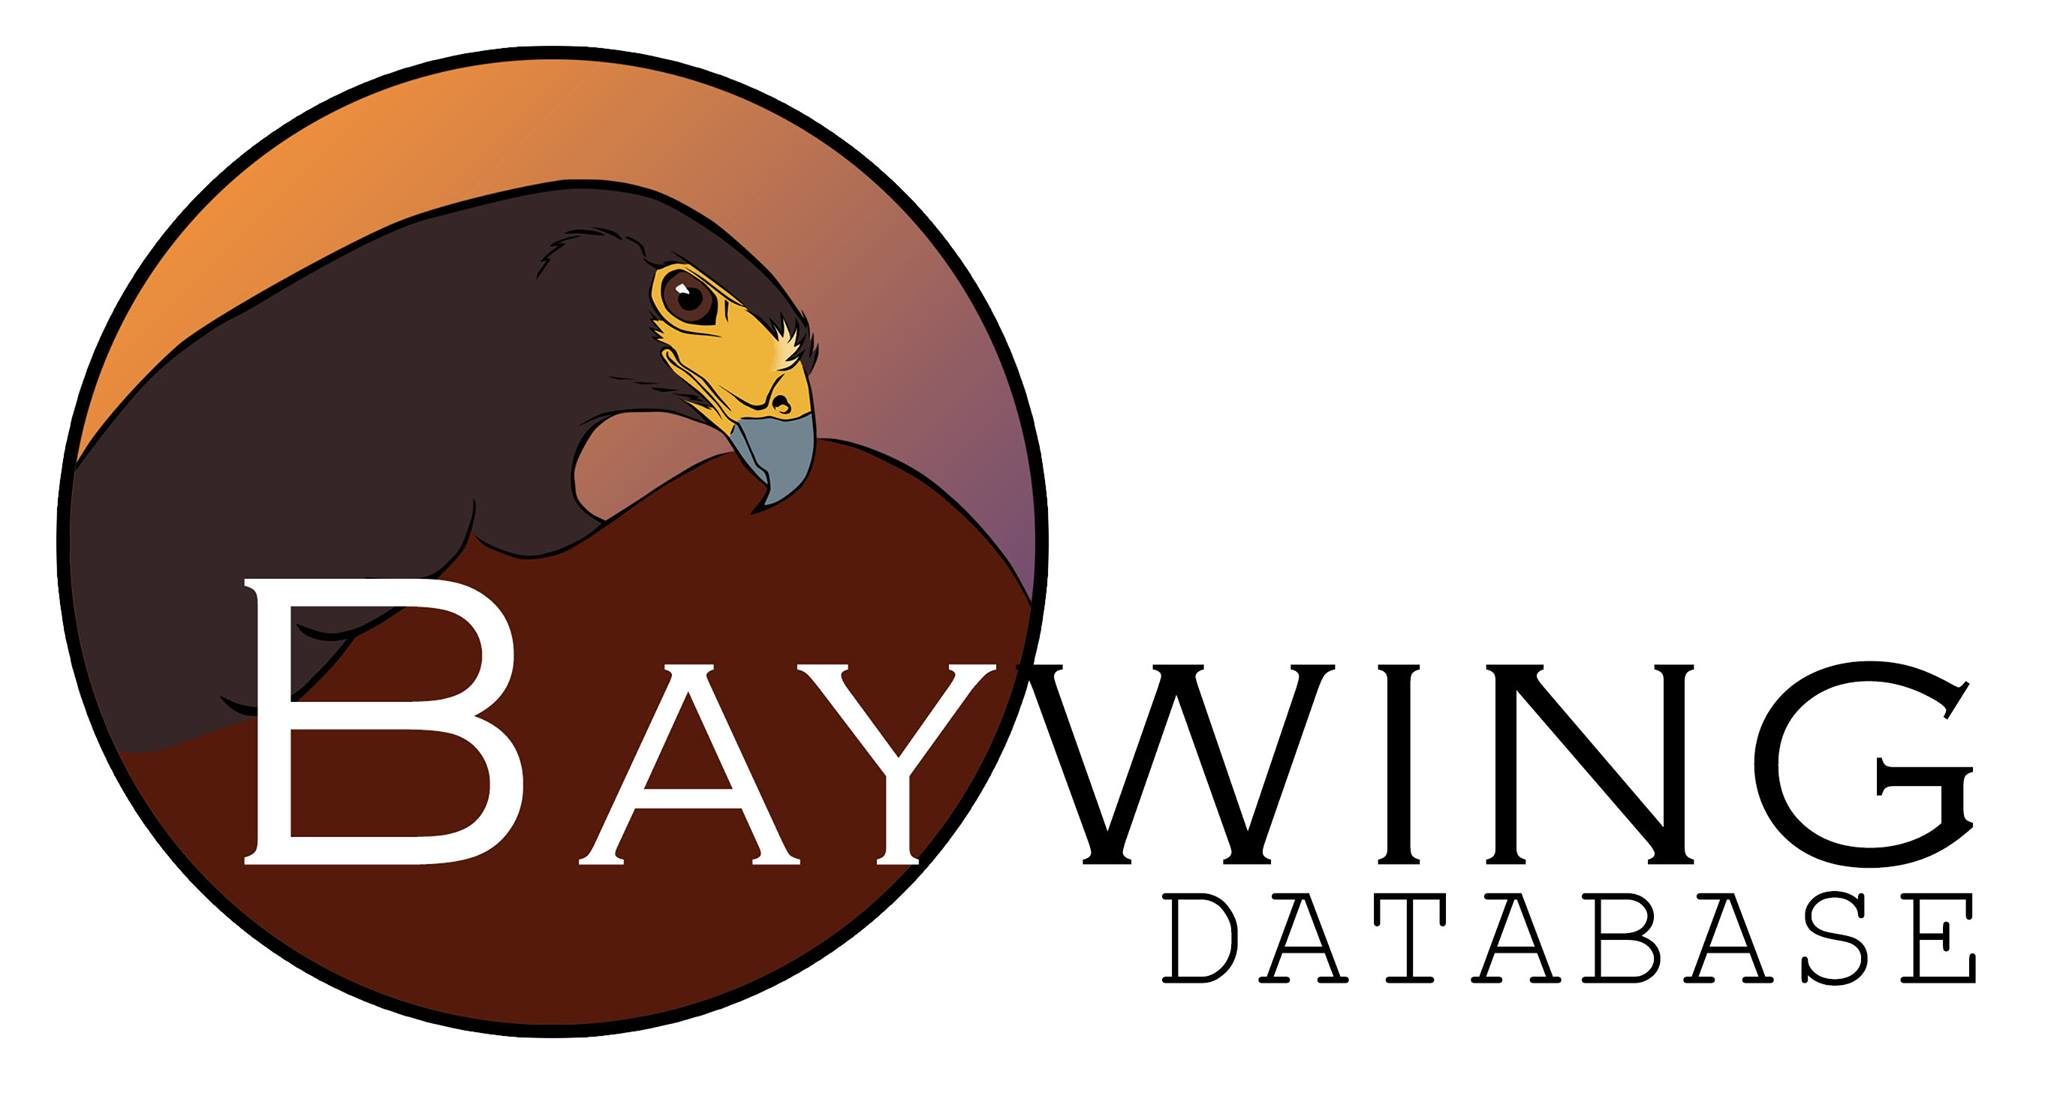 Baywing Database